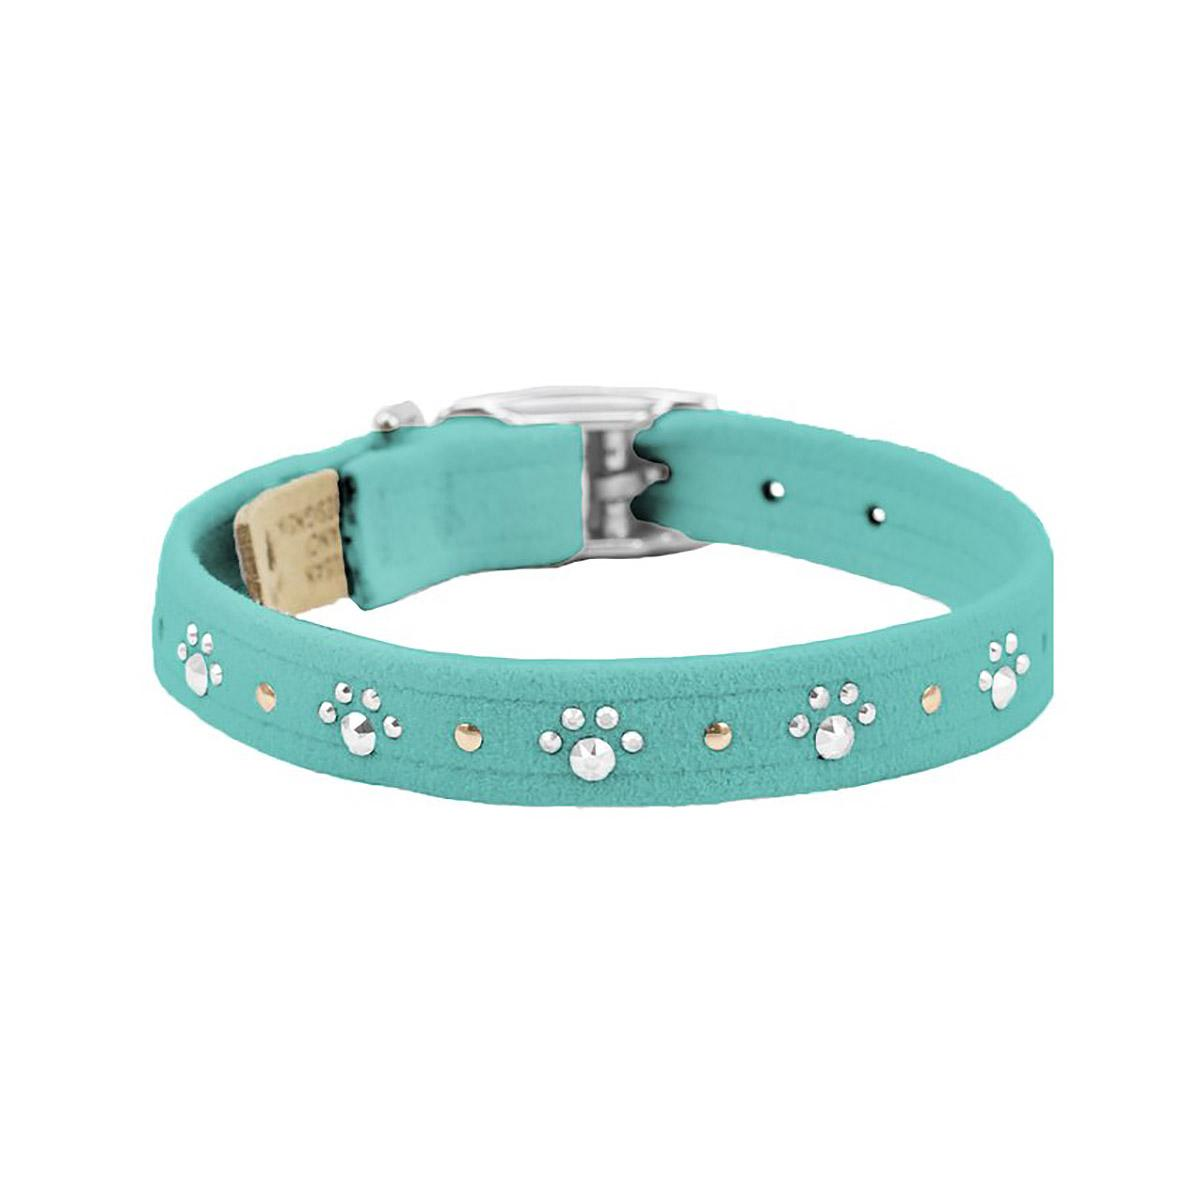 Crystal Paws Dog Collar by Susan Lanci - Bimini Blue